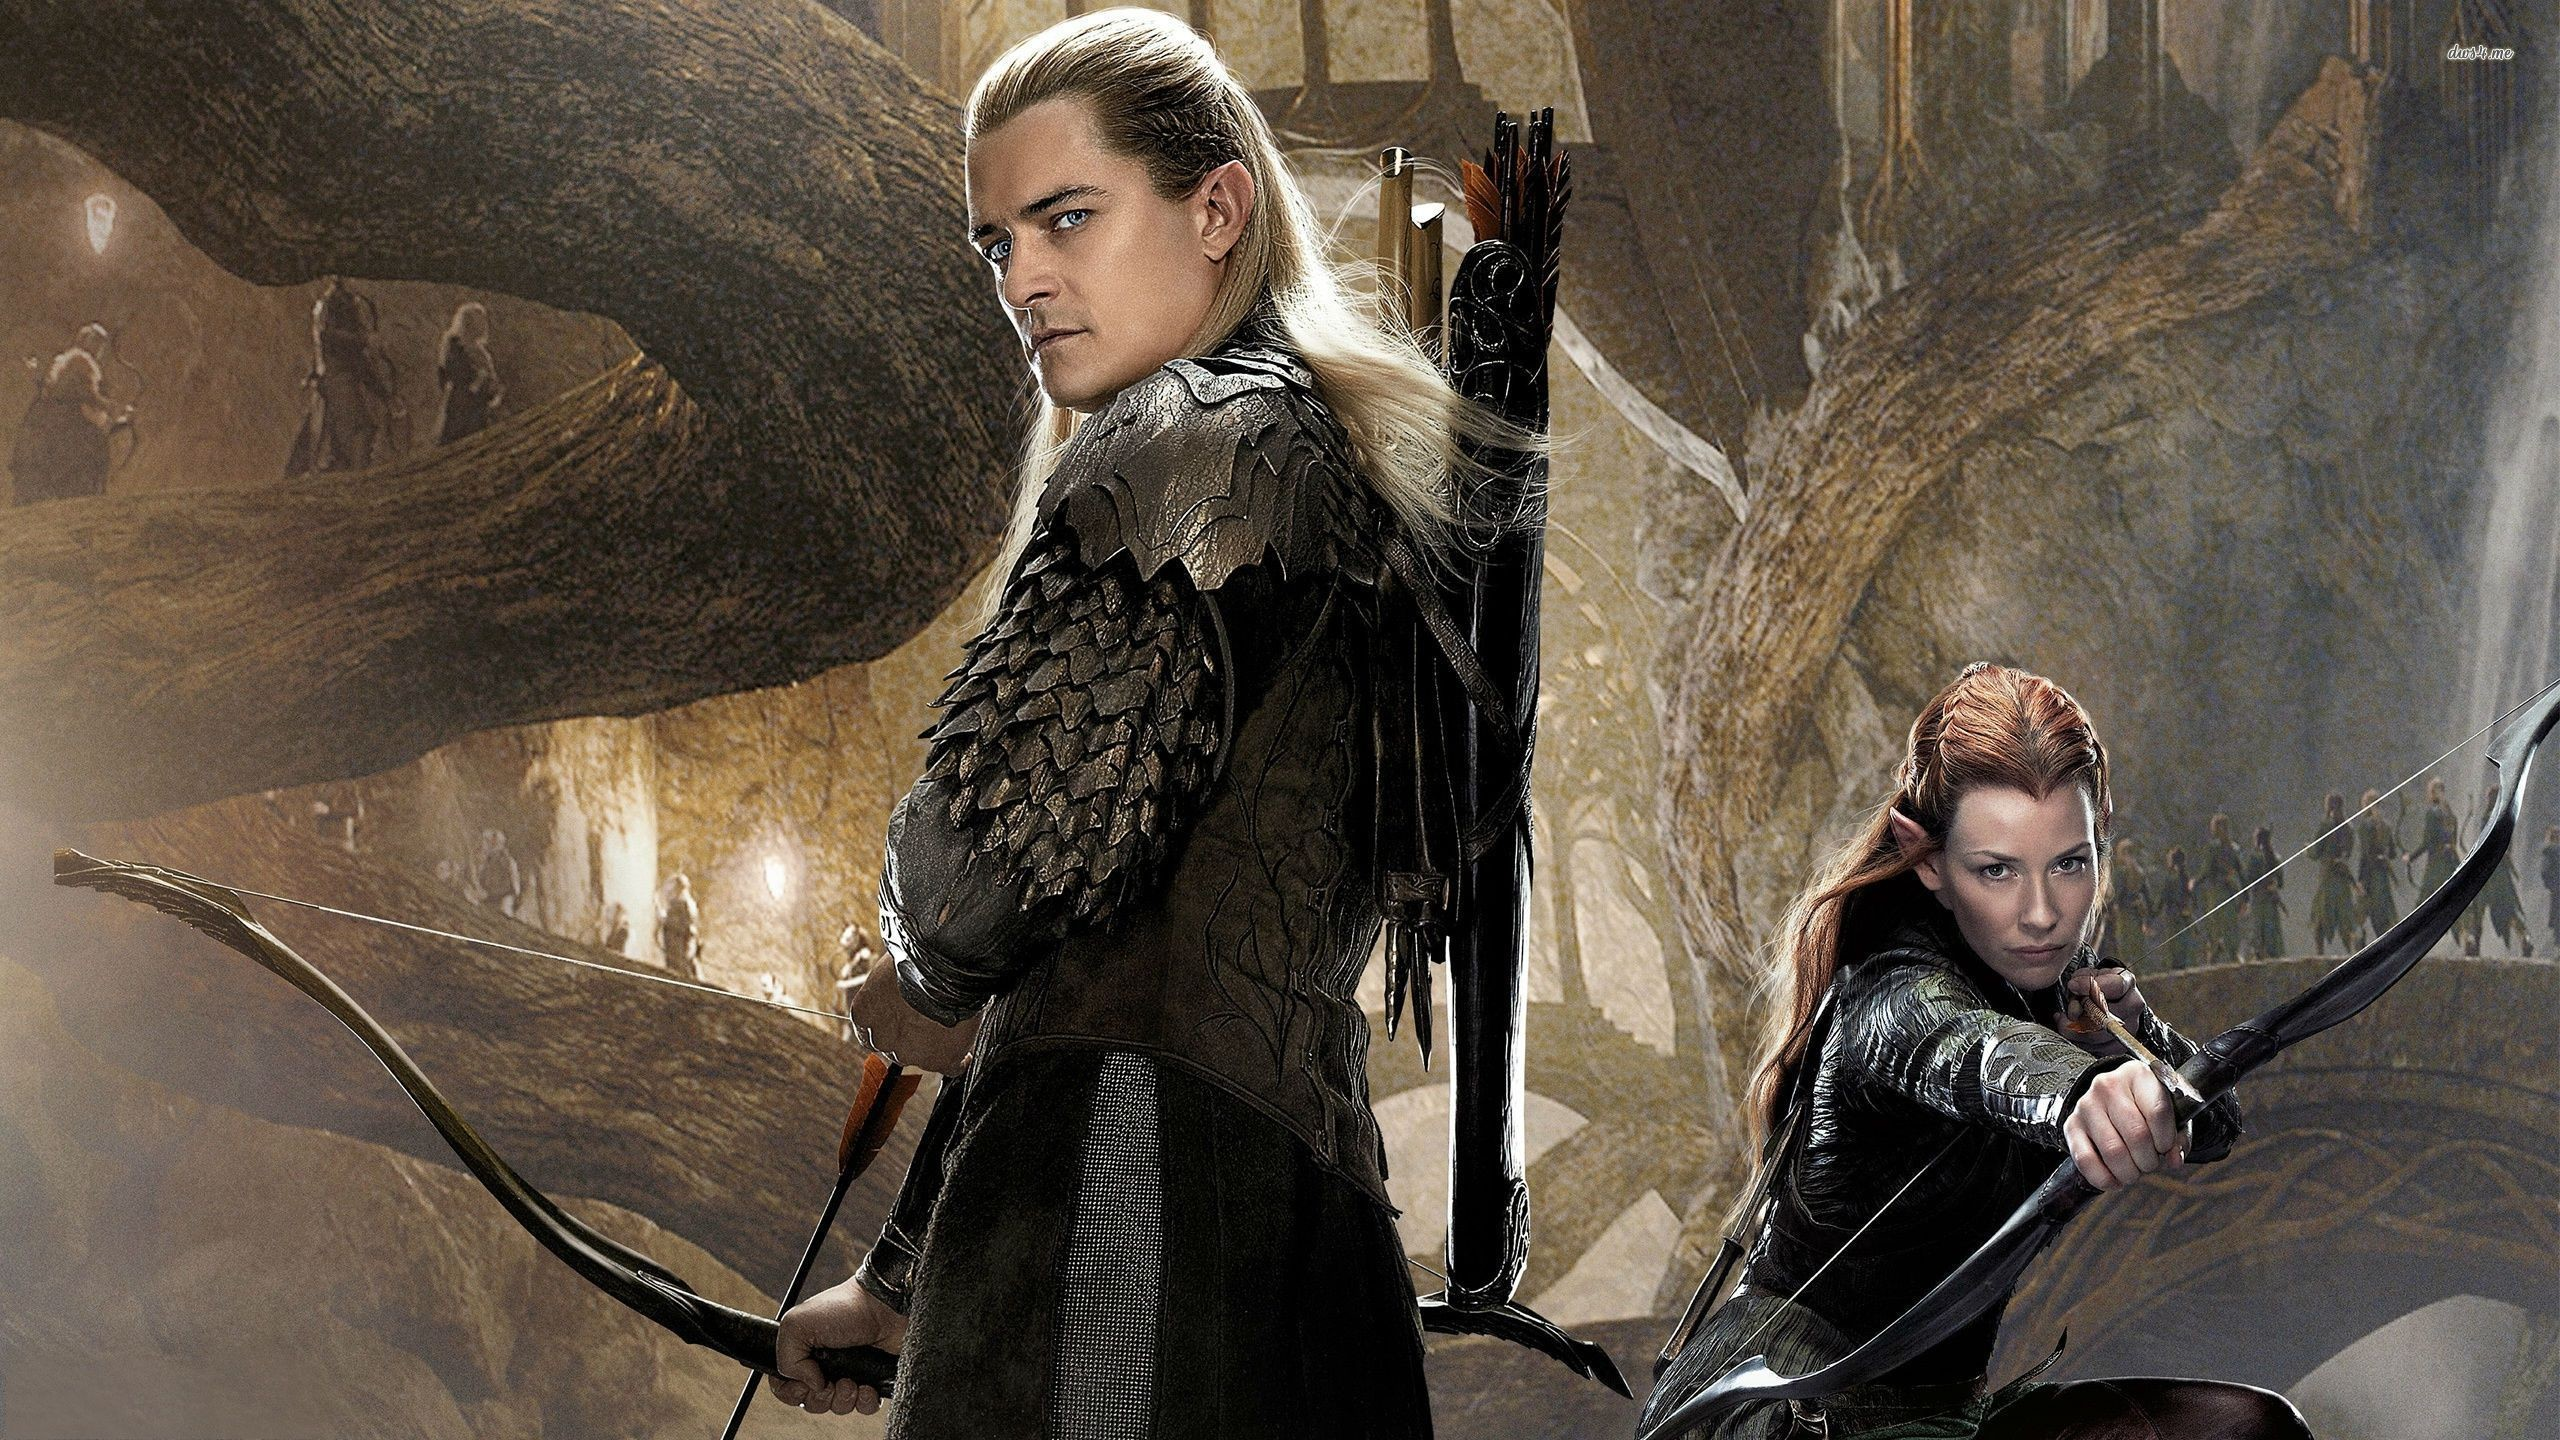 2560x1440 ... Legolas and Tauriel - The Hobbit - The Desolation of Smaug wallpaper   ...